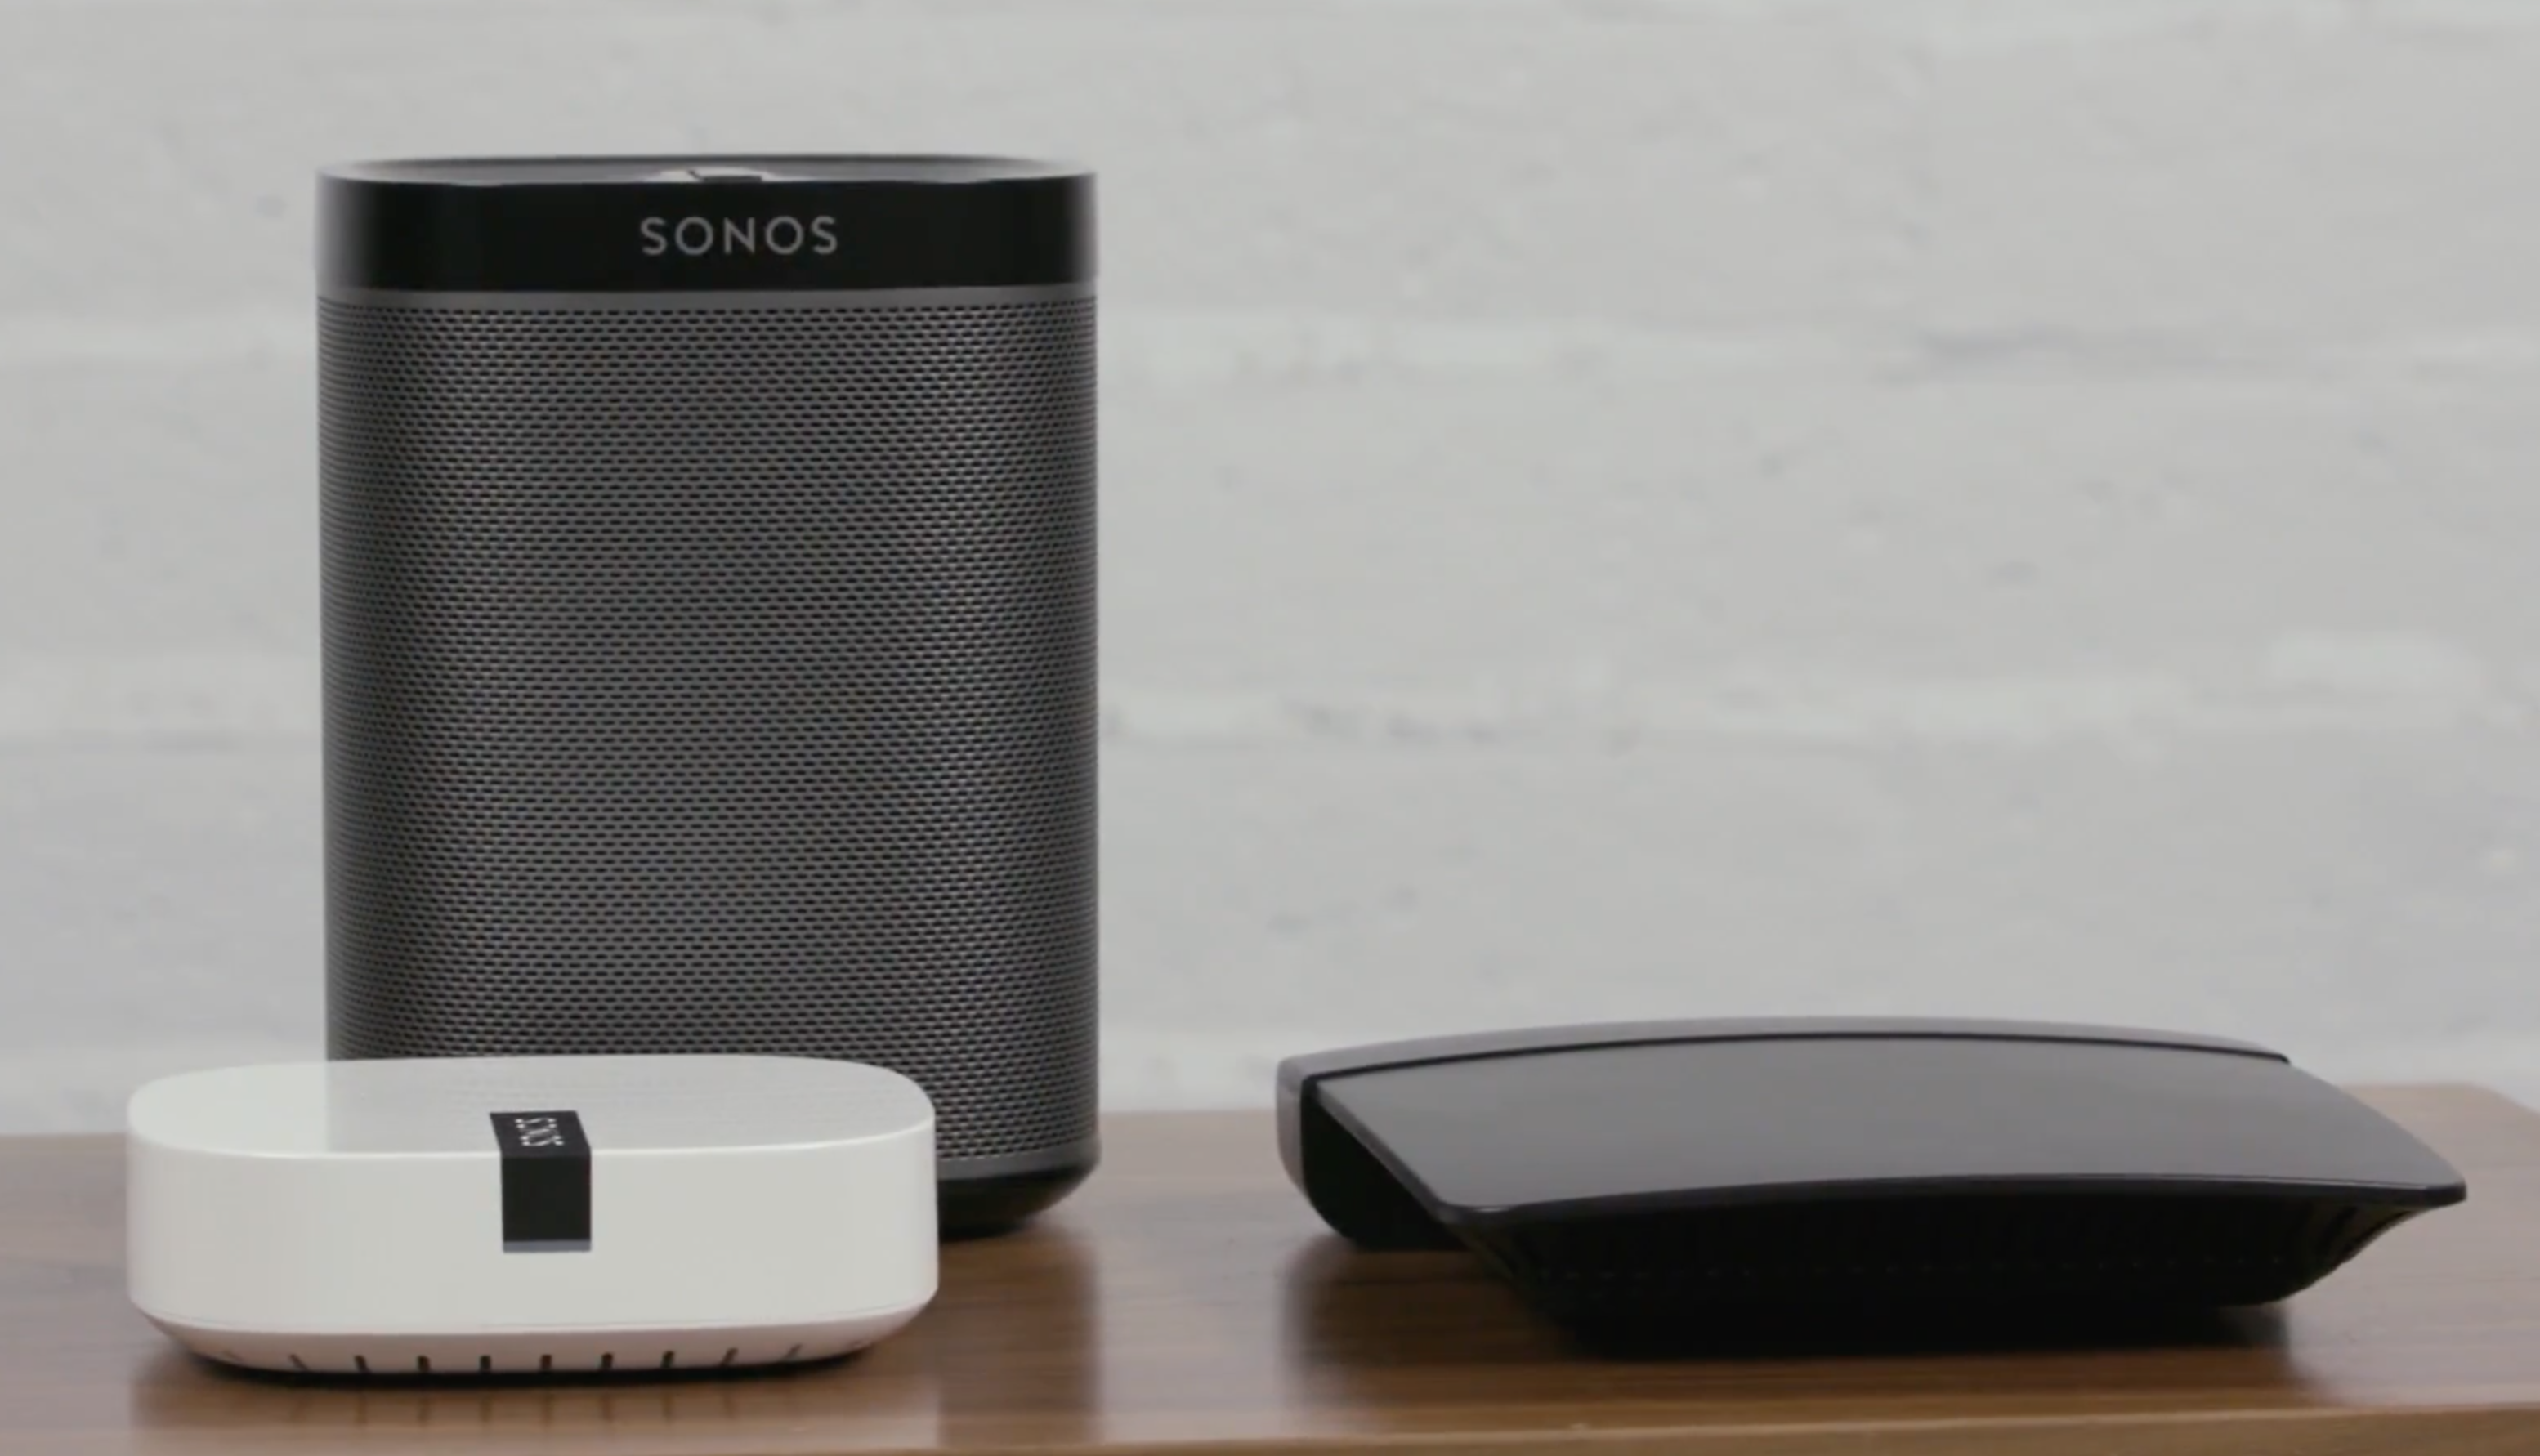 Sonos Boost – The WiFi extension for uninterrupted listening